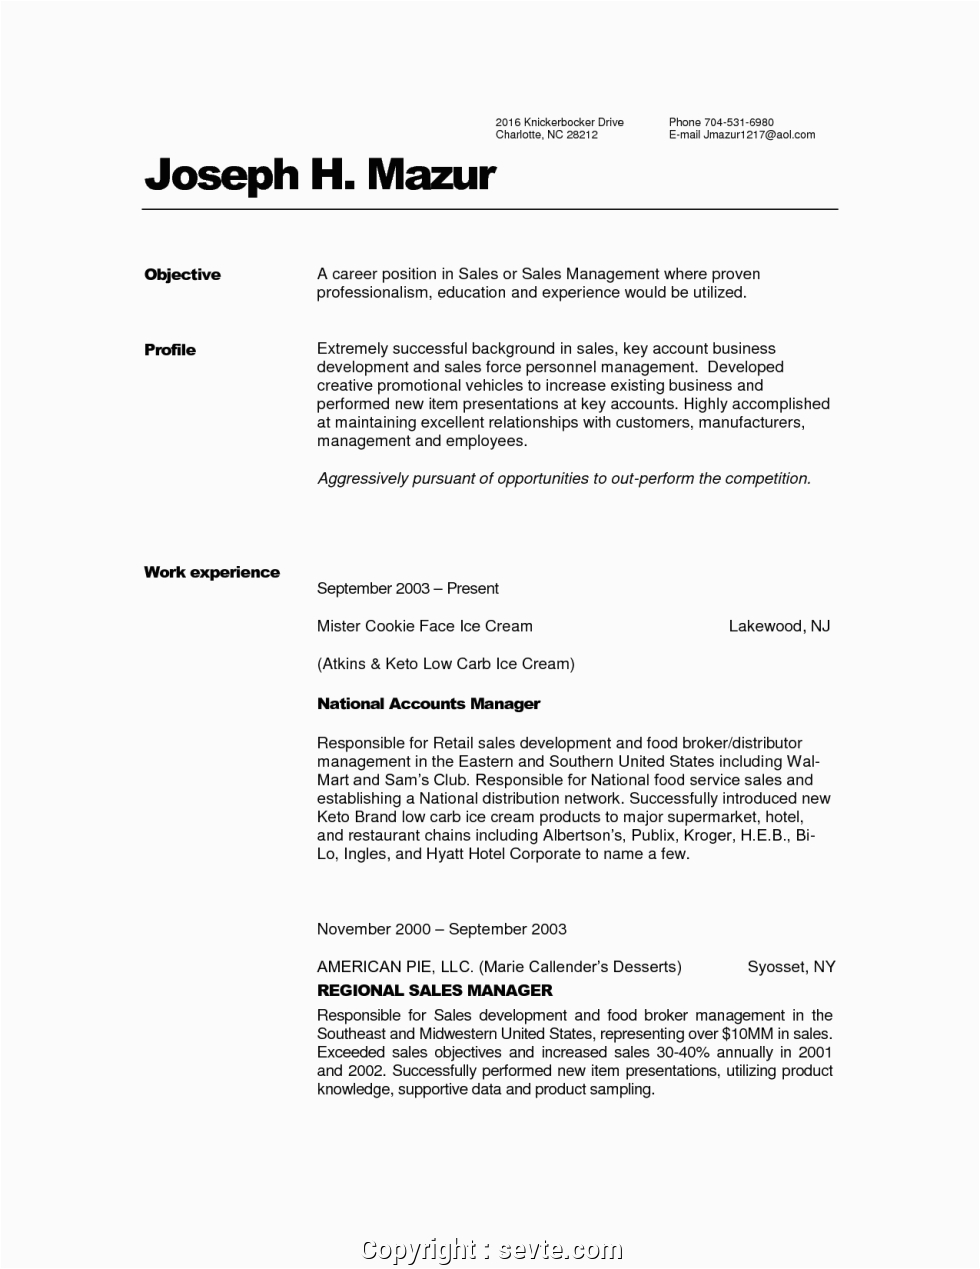 Sample Resume for Hotel and Restaurant Management Ojt Styles Sample Career Objective In Resume for Hotel and